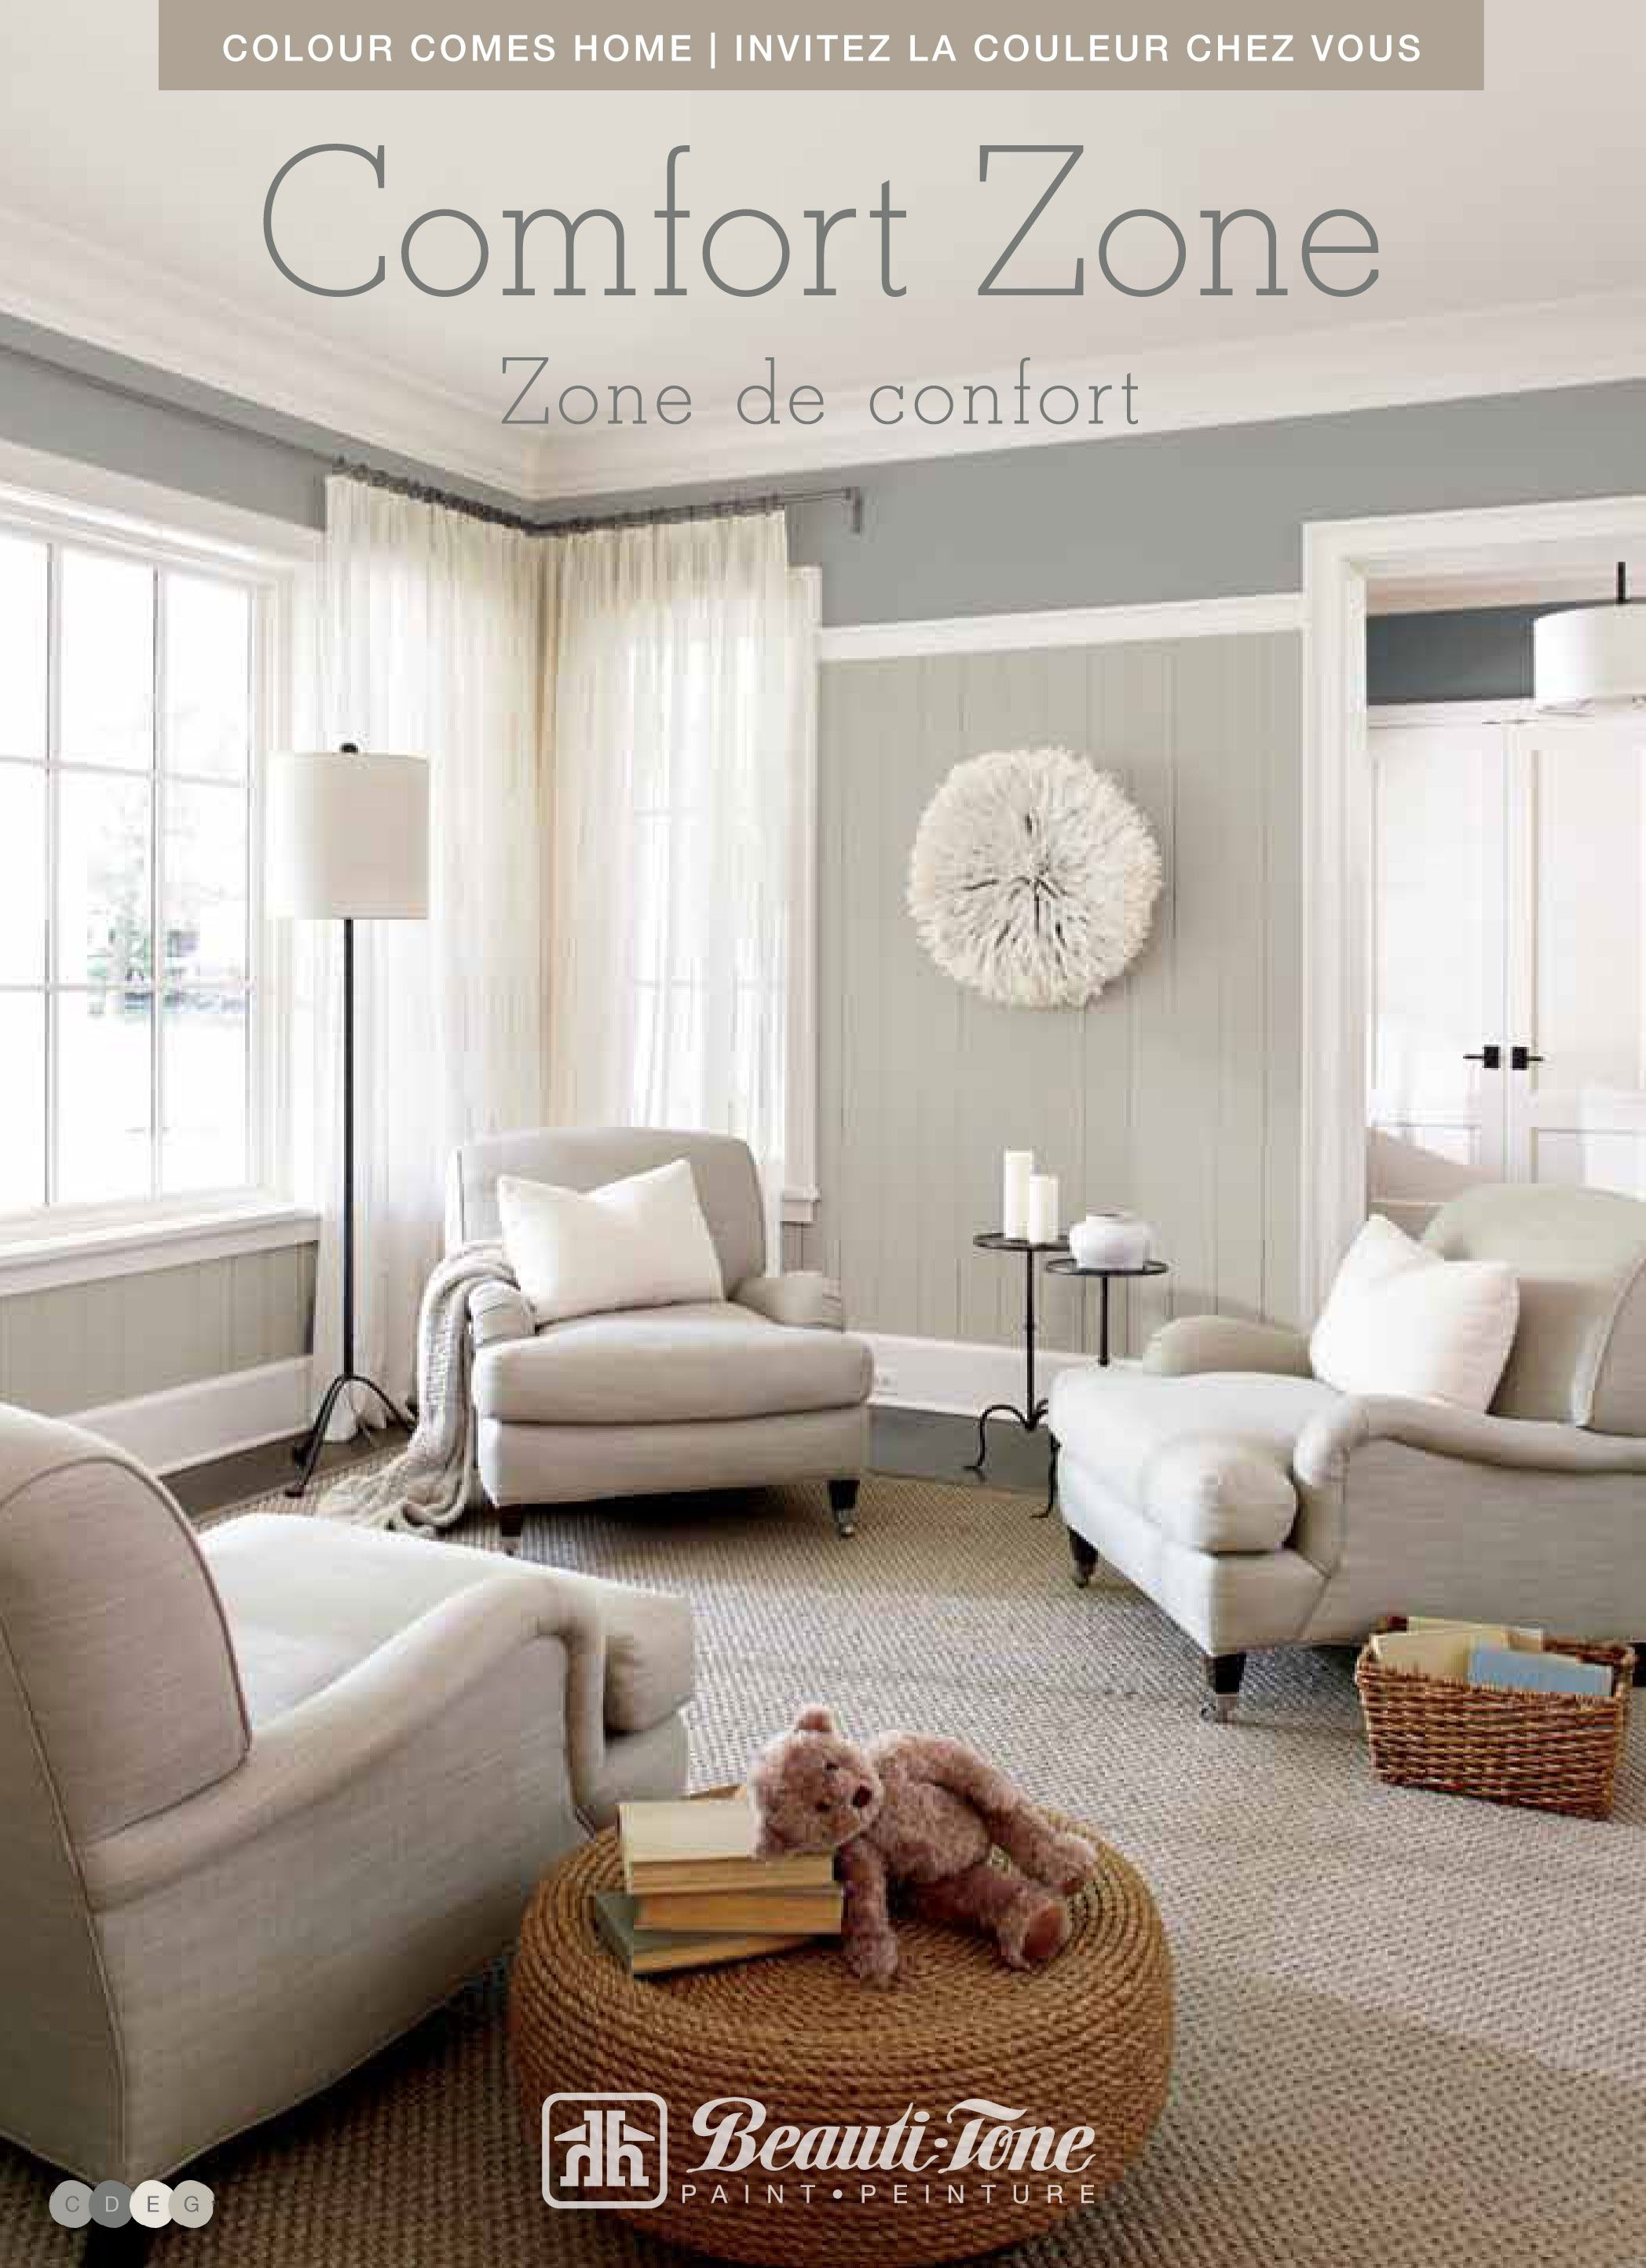 Colour comes home comfort zone collection by beautitone home colour comes home comfort zone collection by beautitone geenschuldenfo Images